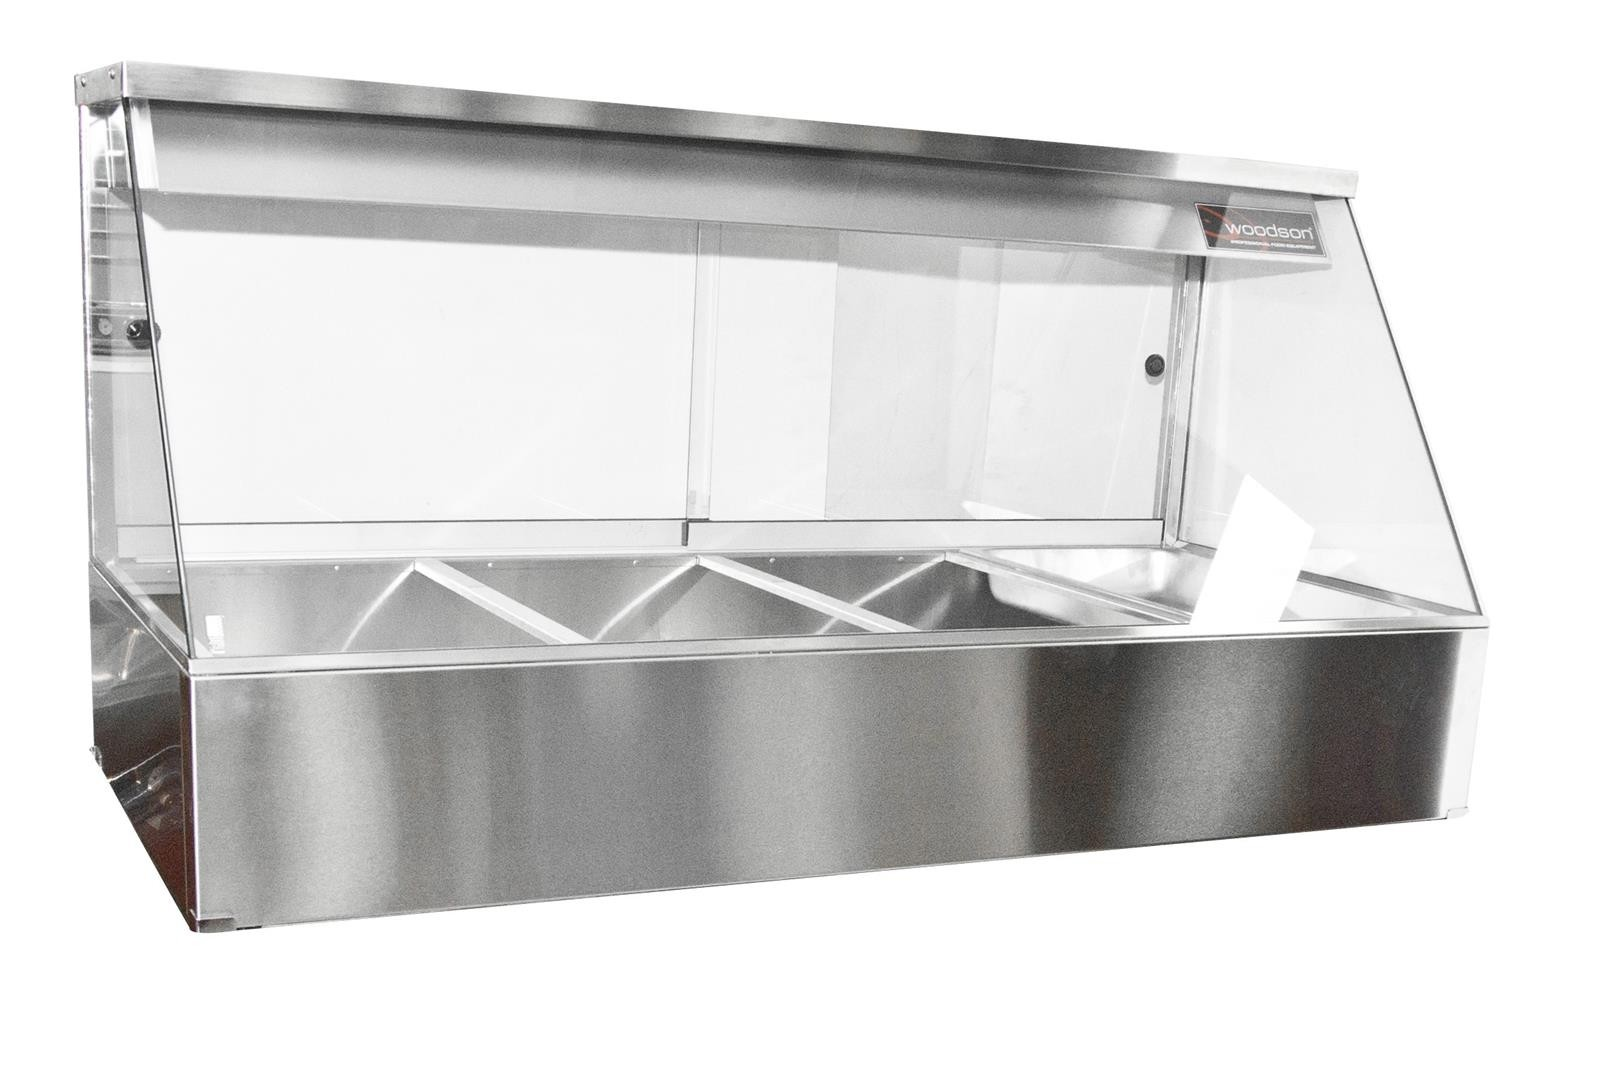 Woodson W.HFS22 Hot Food Display Straight Glass